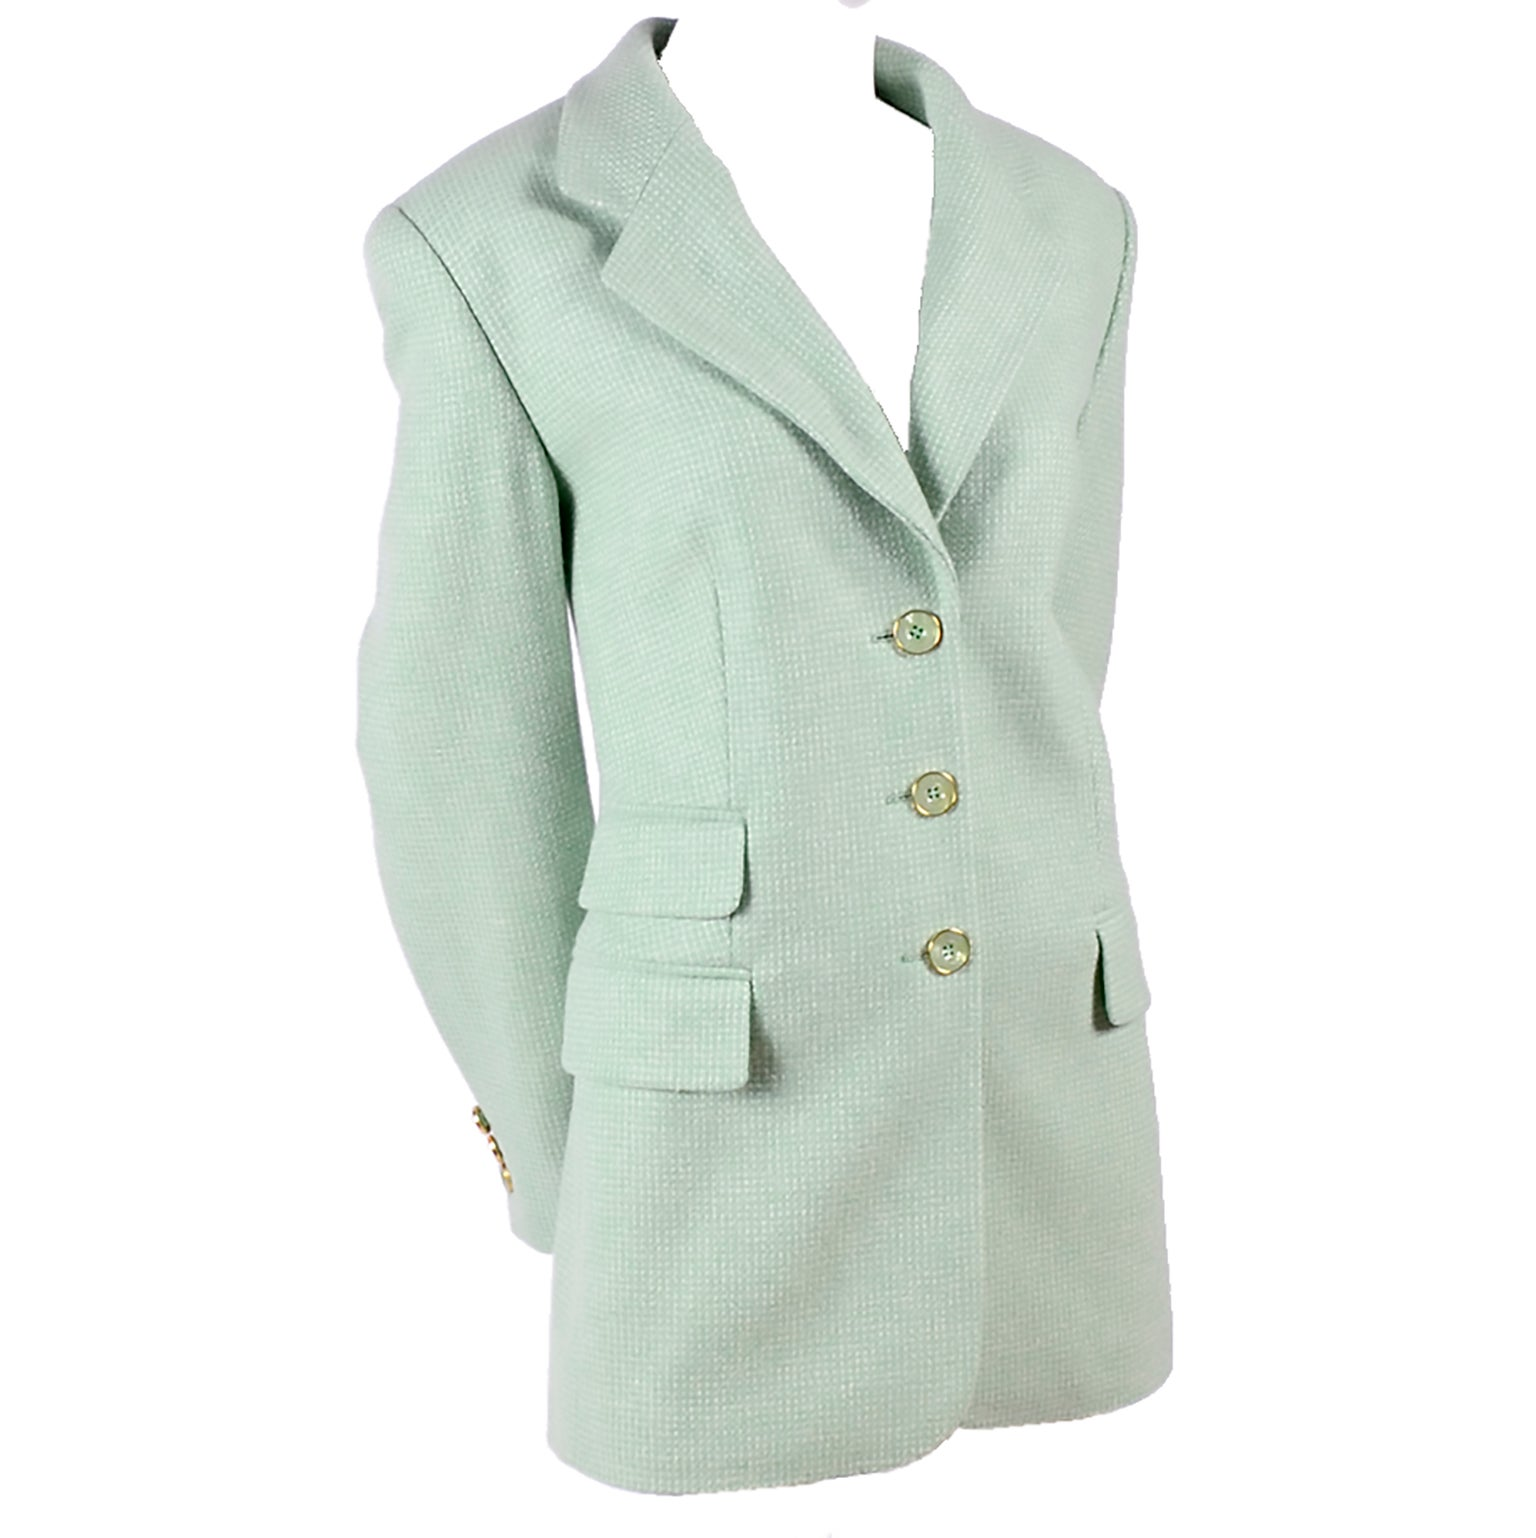 Escada Margaretha Ley Green Cashmere Blazer Jacket in Size 8